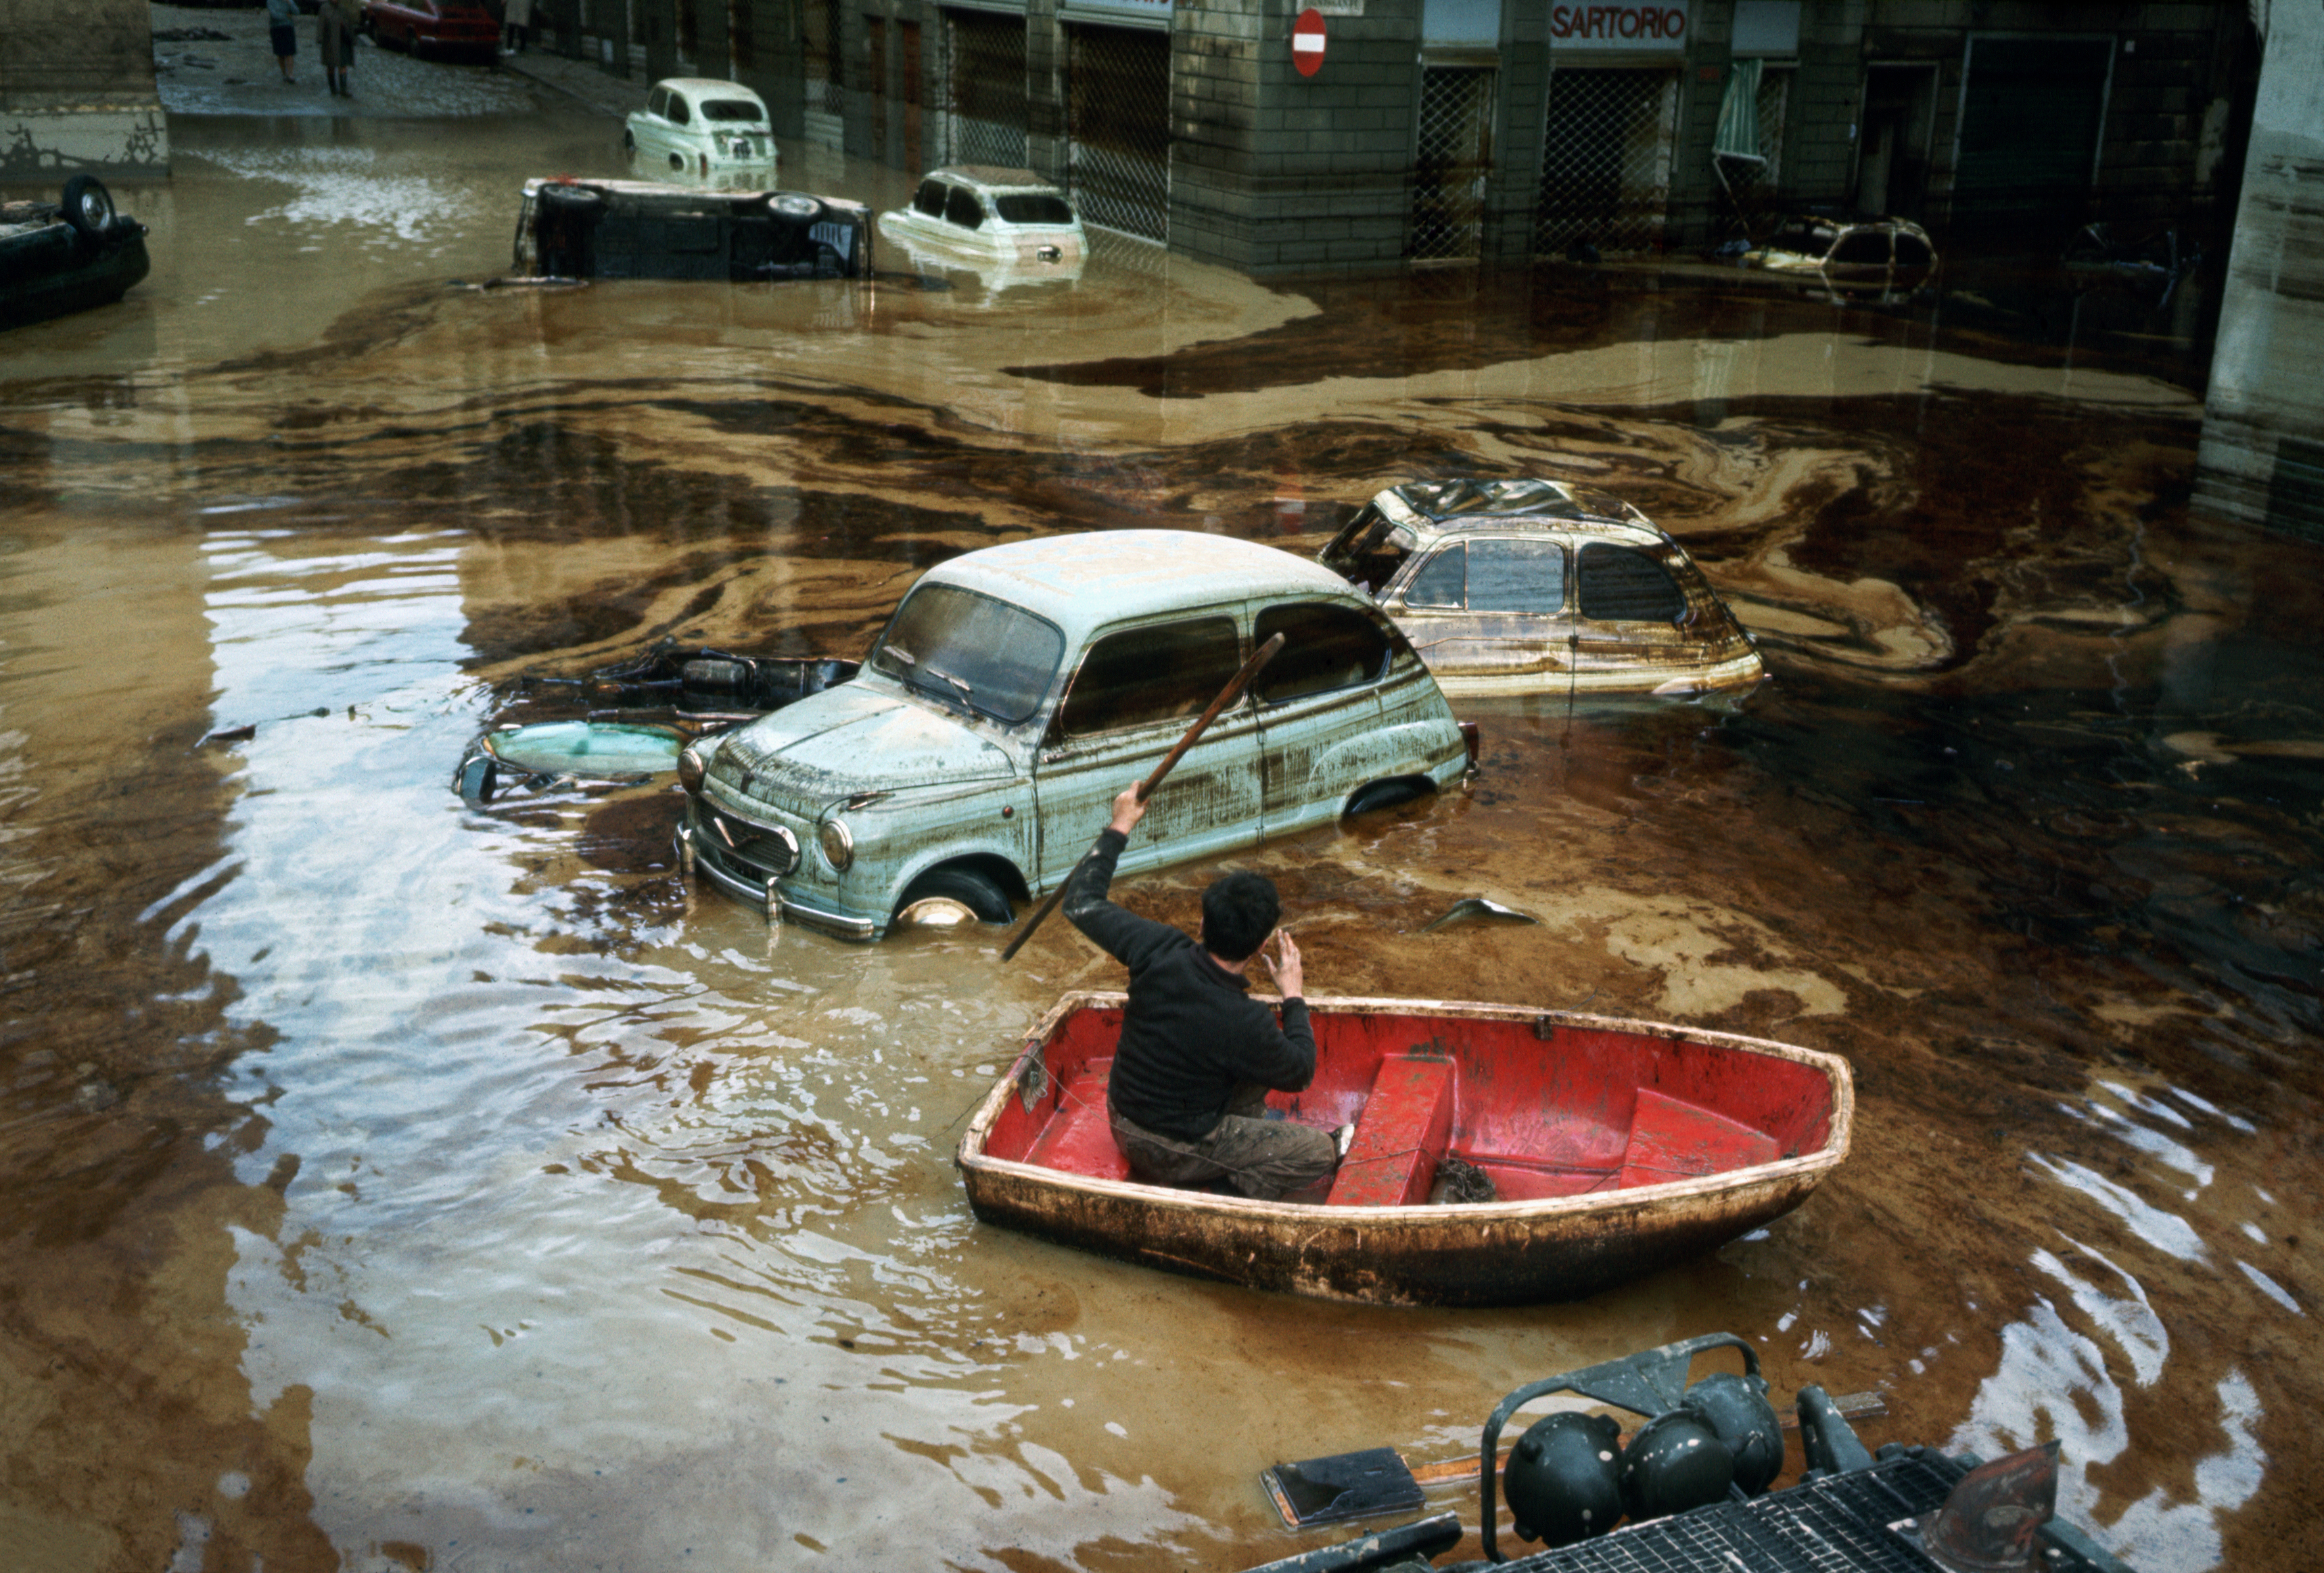 The World's Most Catastrophic Floods, in Photos - HISTORY